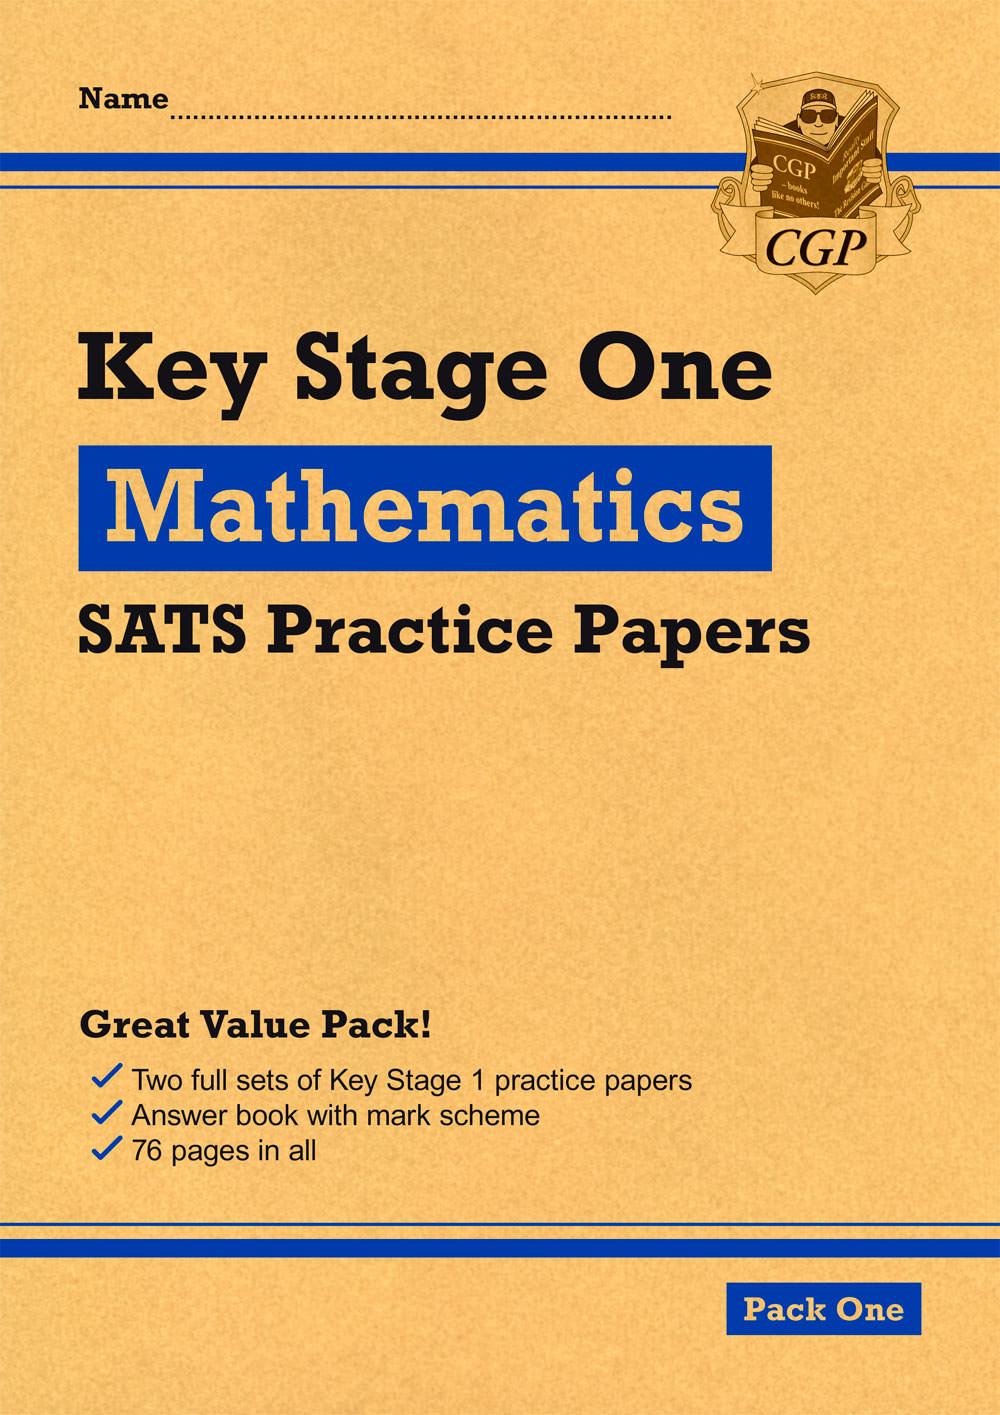 MHEP14 - New KS1 Maths SATS Practice Papers: Pack 1 (for the 2019 tests)